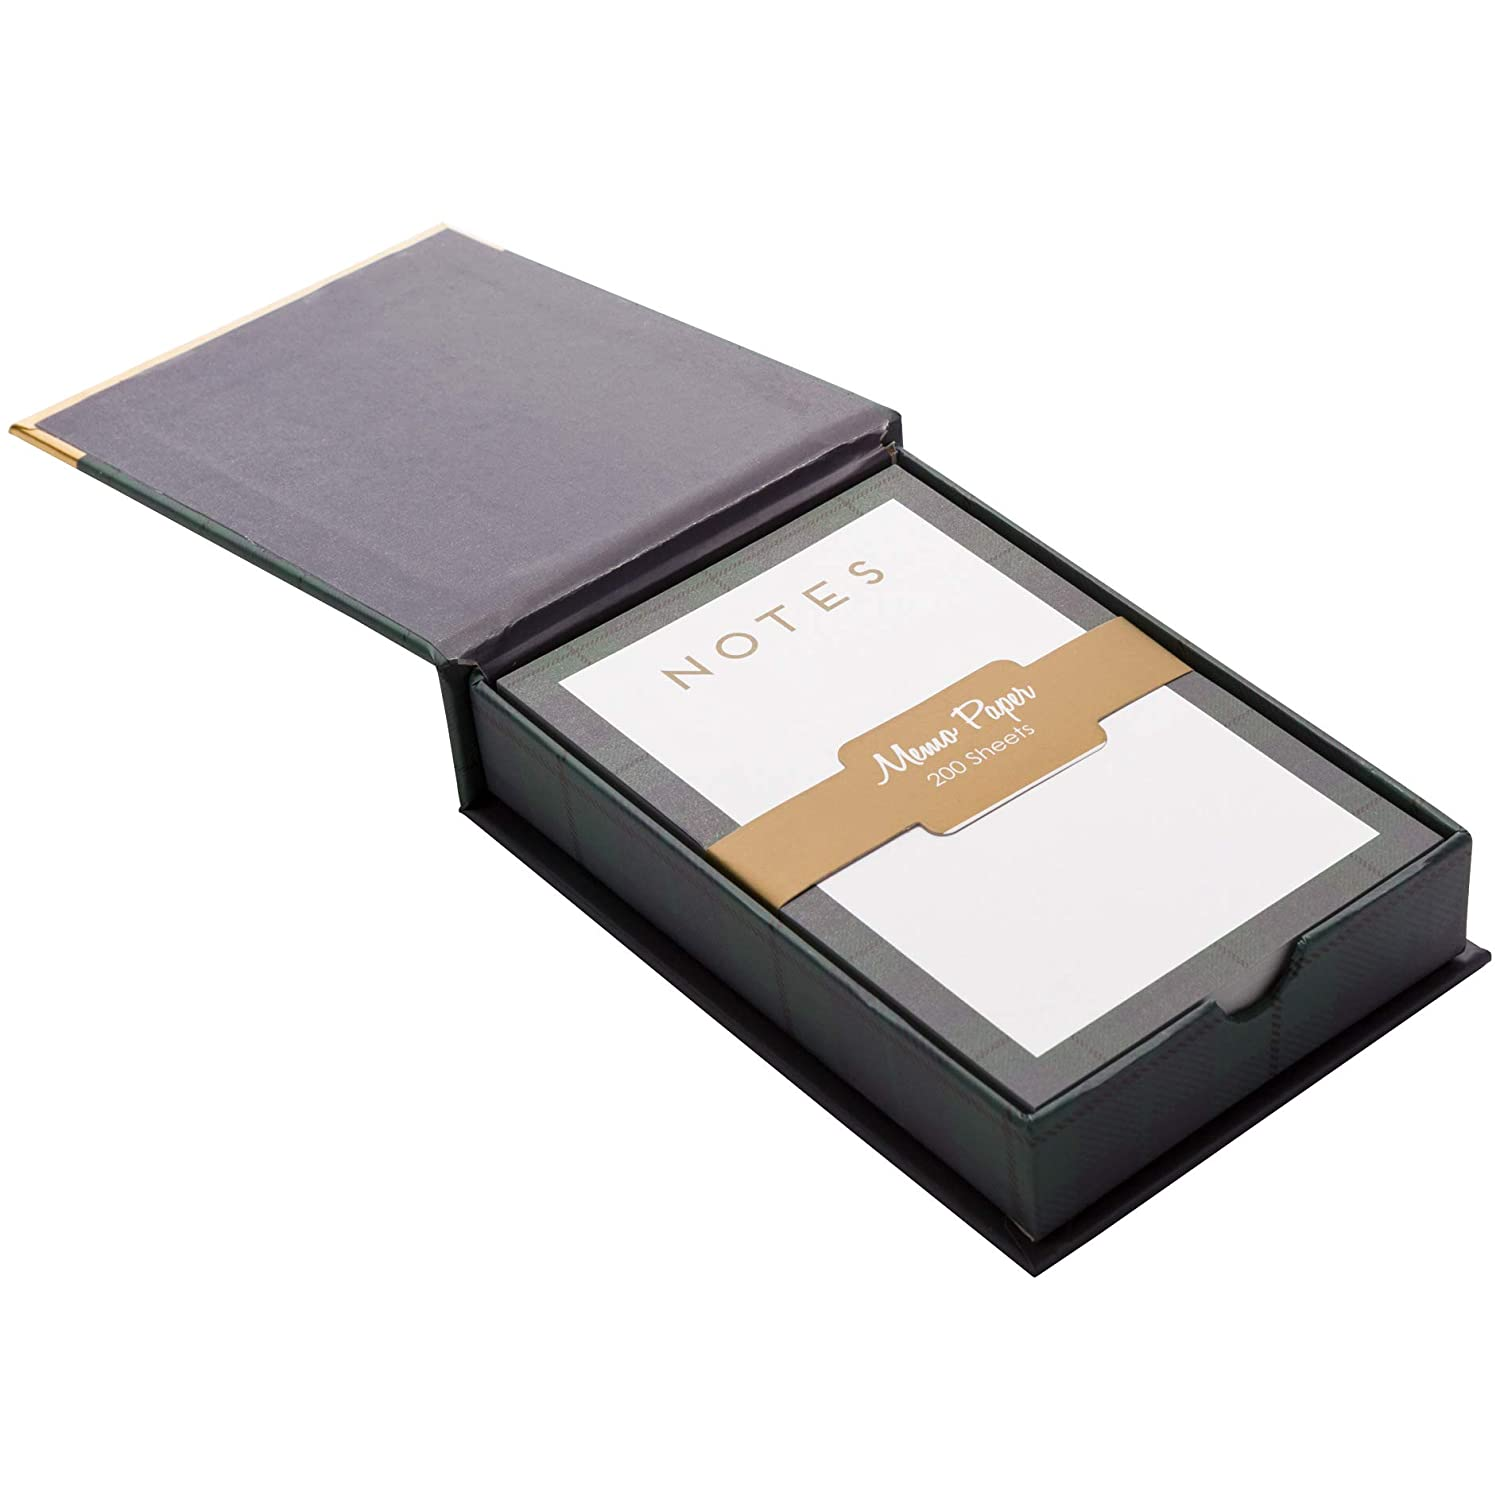 C.R Gibson Navy Plaid and Golden Arrow Desk Accessory Magnetic Memo Box Stationery Set 3.5 x 5.5 200 sheets